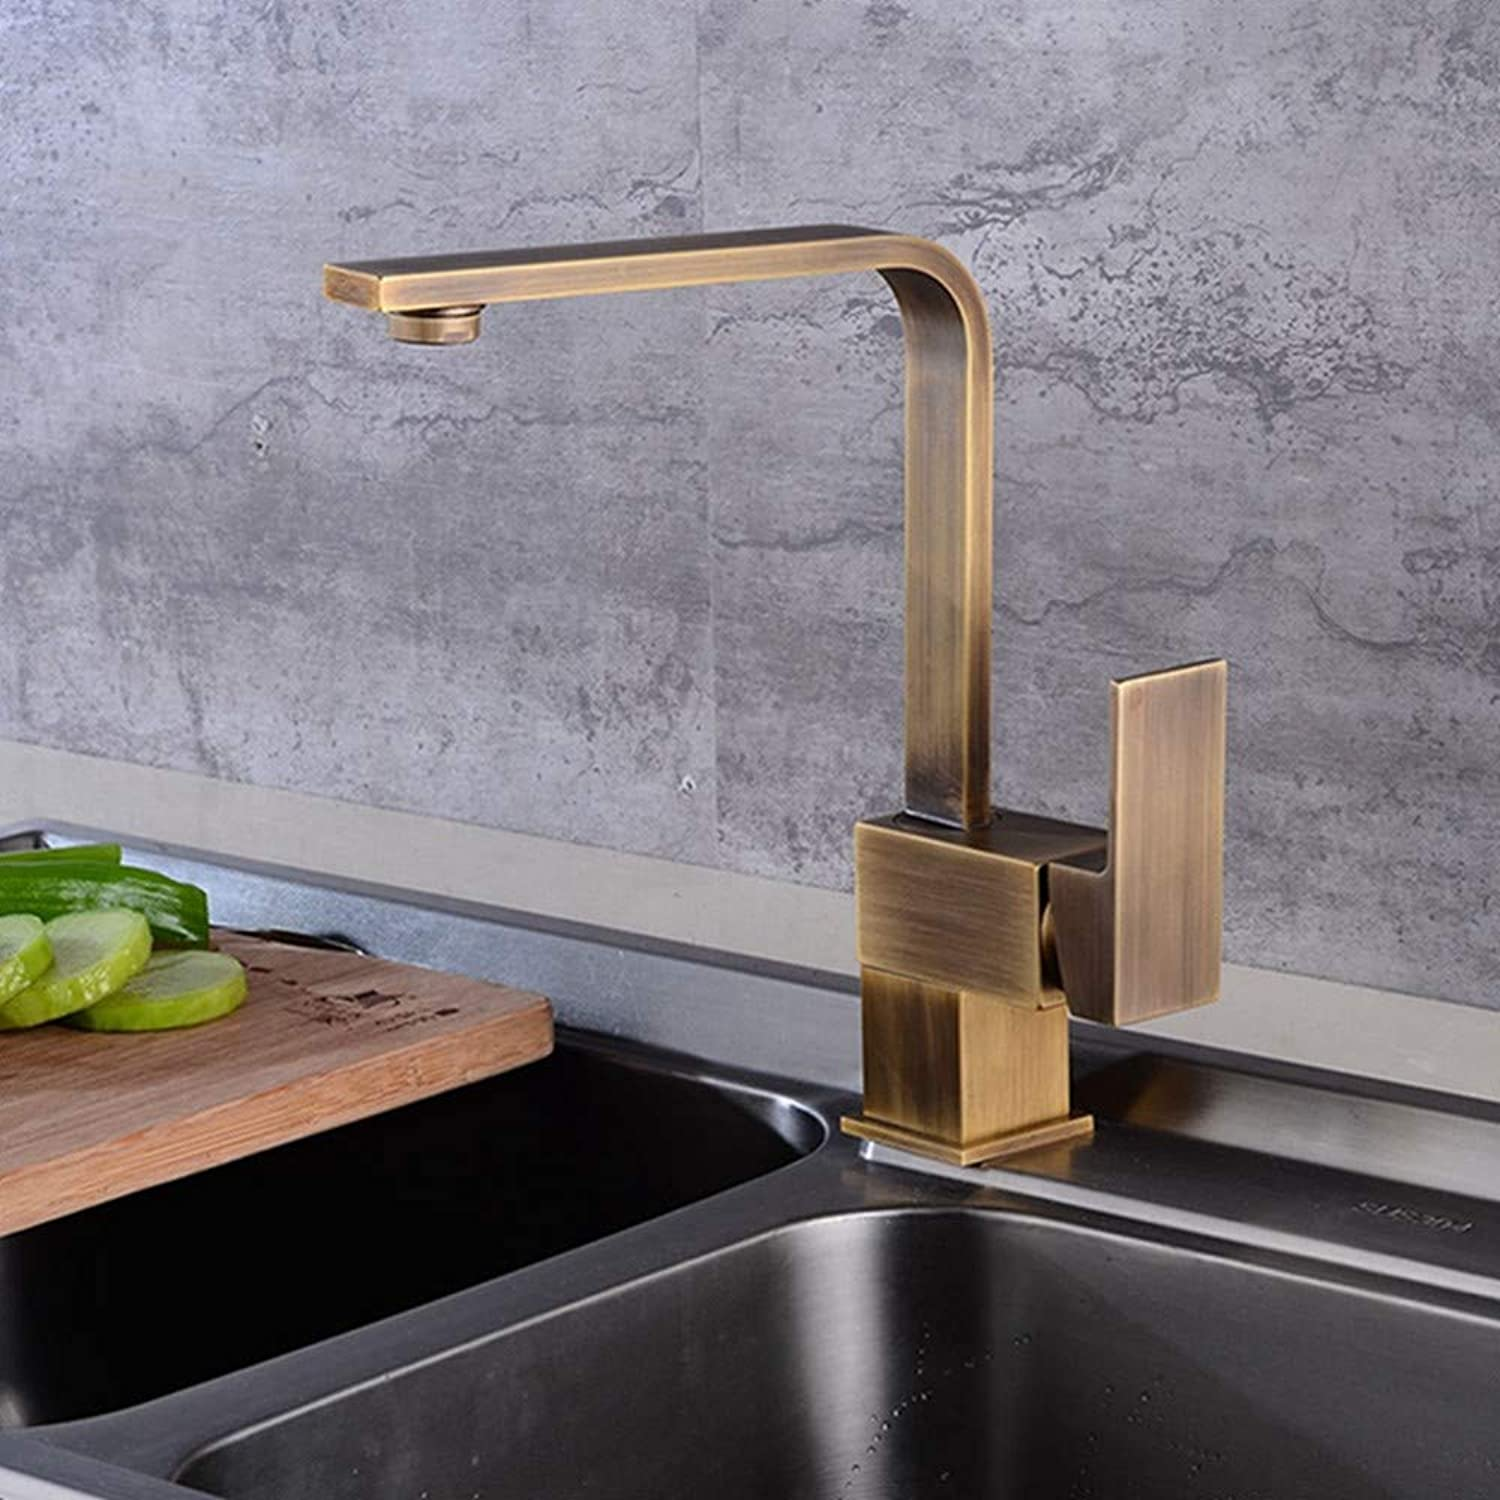 FZHLR Kitchen Sink Faucets Antique Brass Finish Brass Crane Kitchen Faucets Hot Cold Water Mixer Tap Single Hole Mixer Taps360 Degree Swivel Torneira